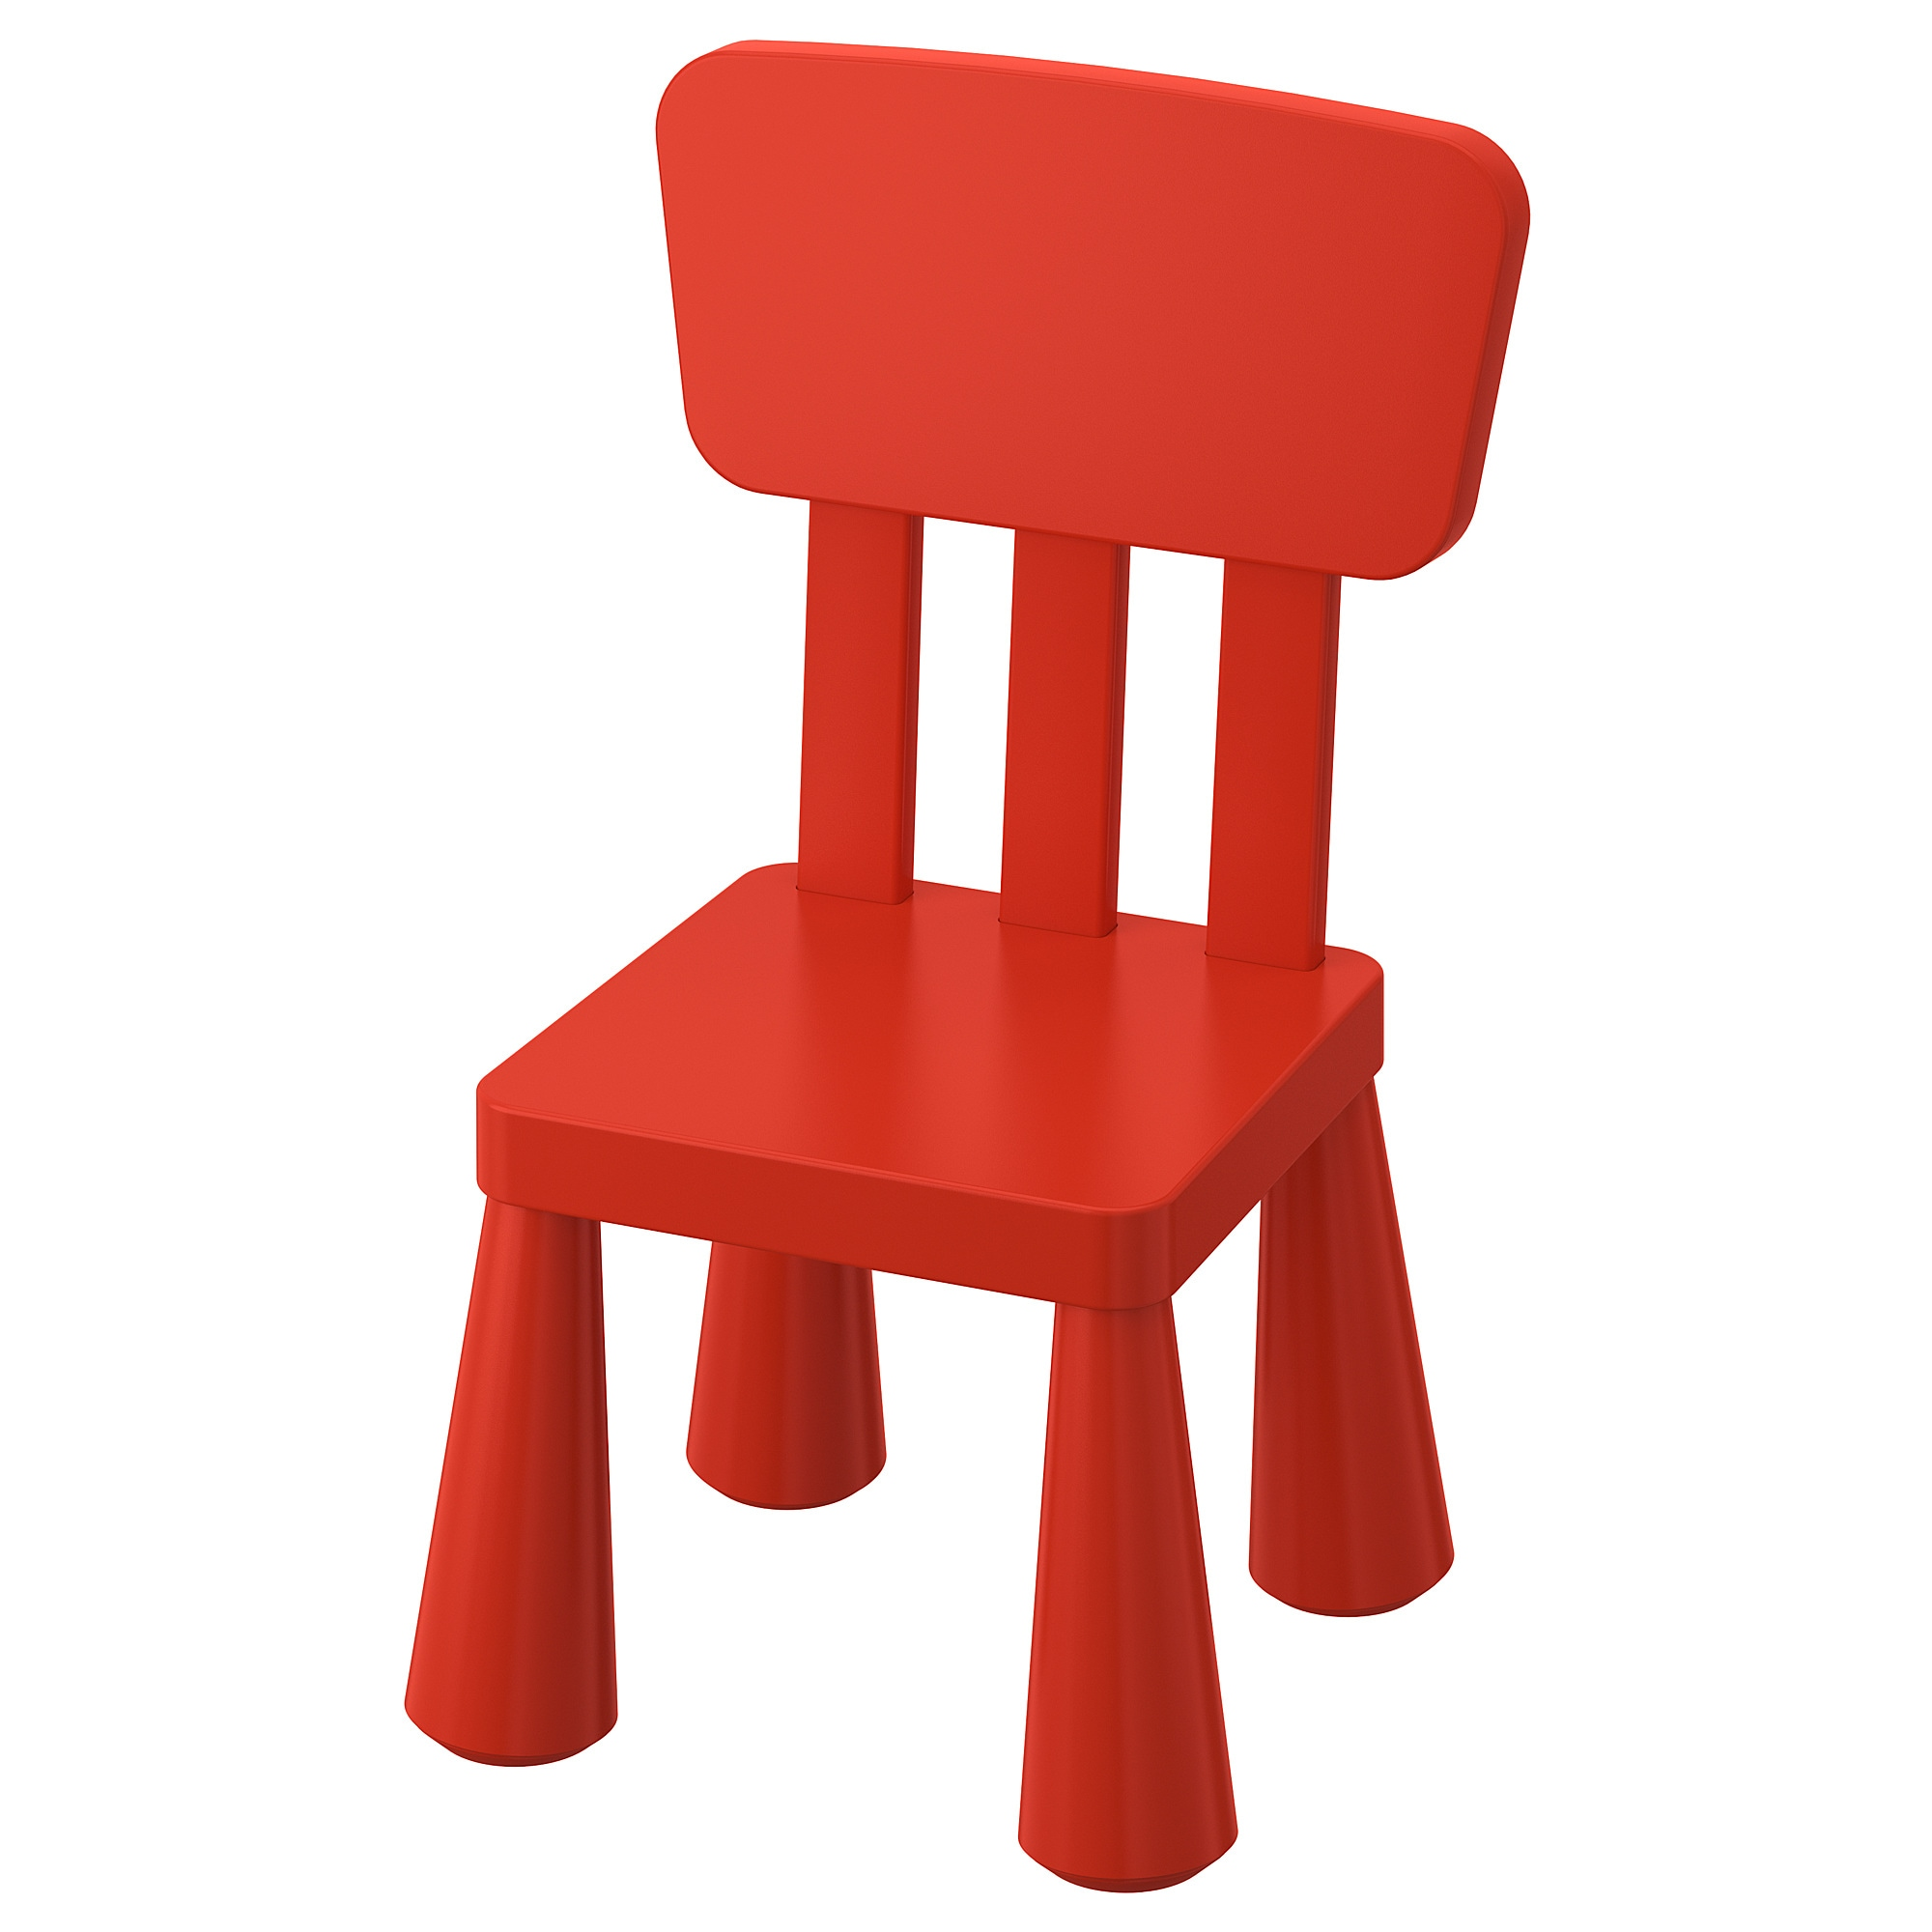 Mammut childrens chair indoor outdoor red